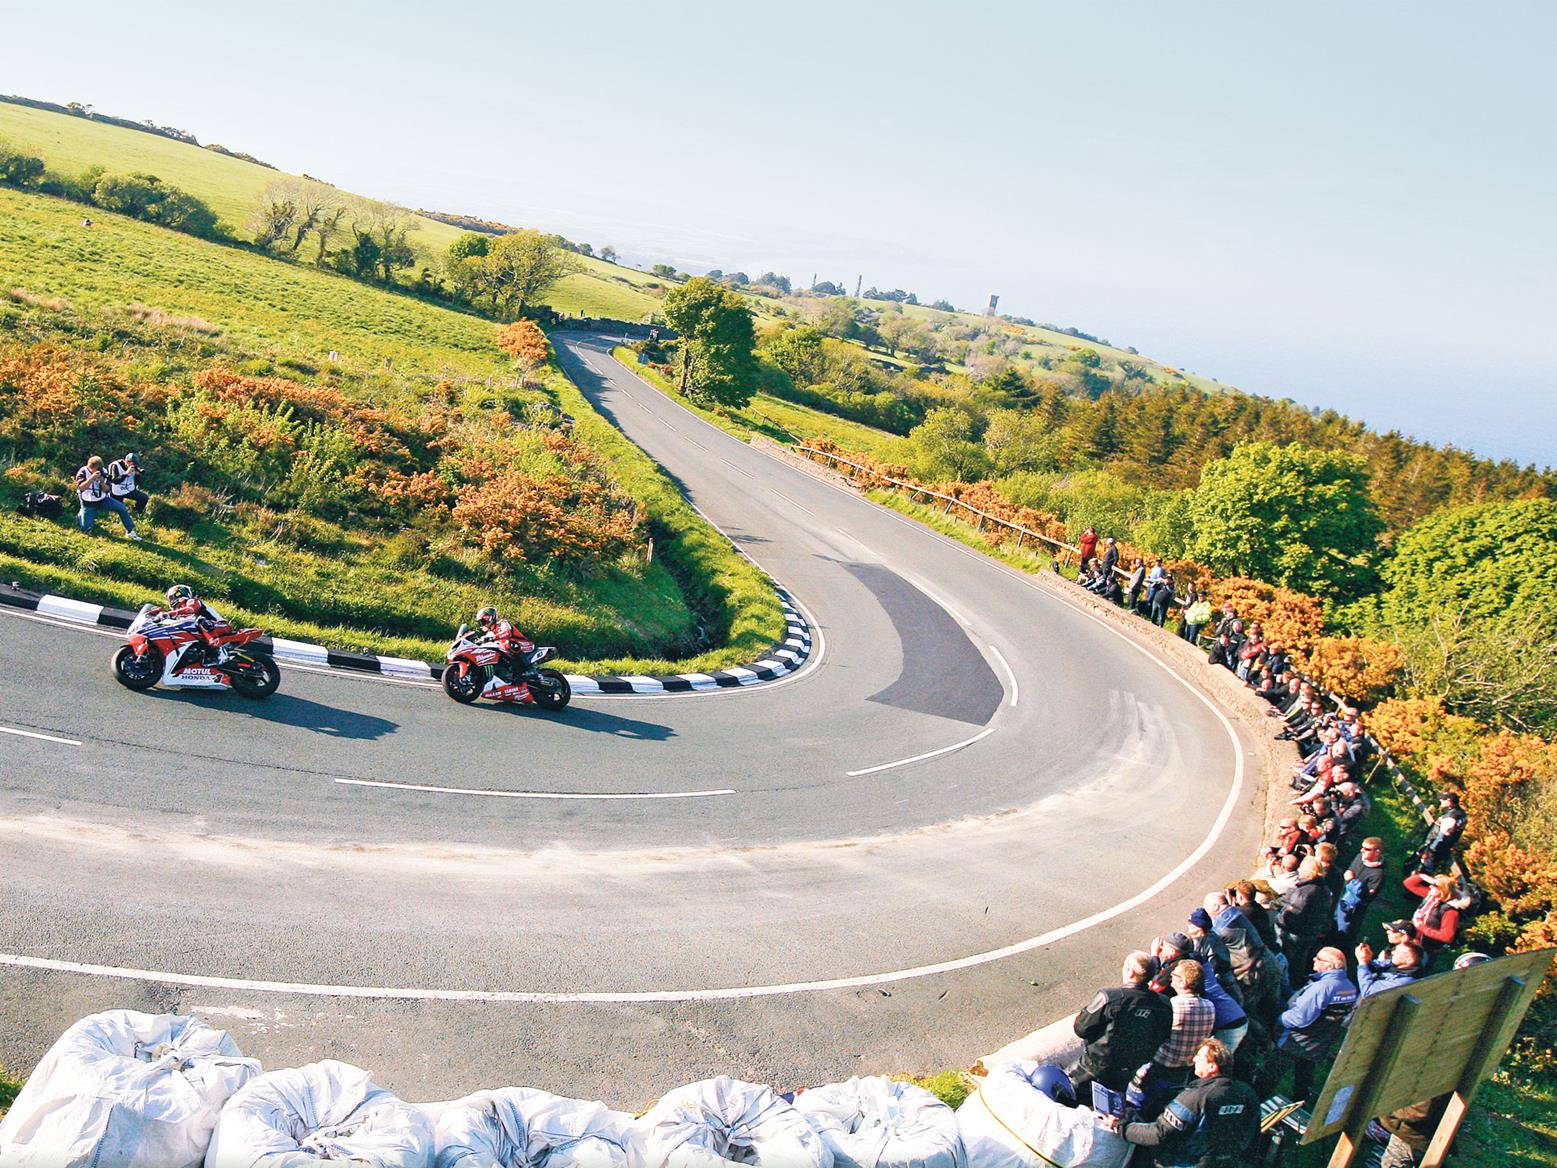 Conor Cummins and John McGuinness at The Gooseneck